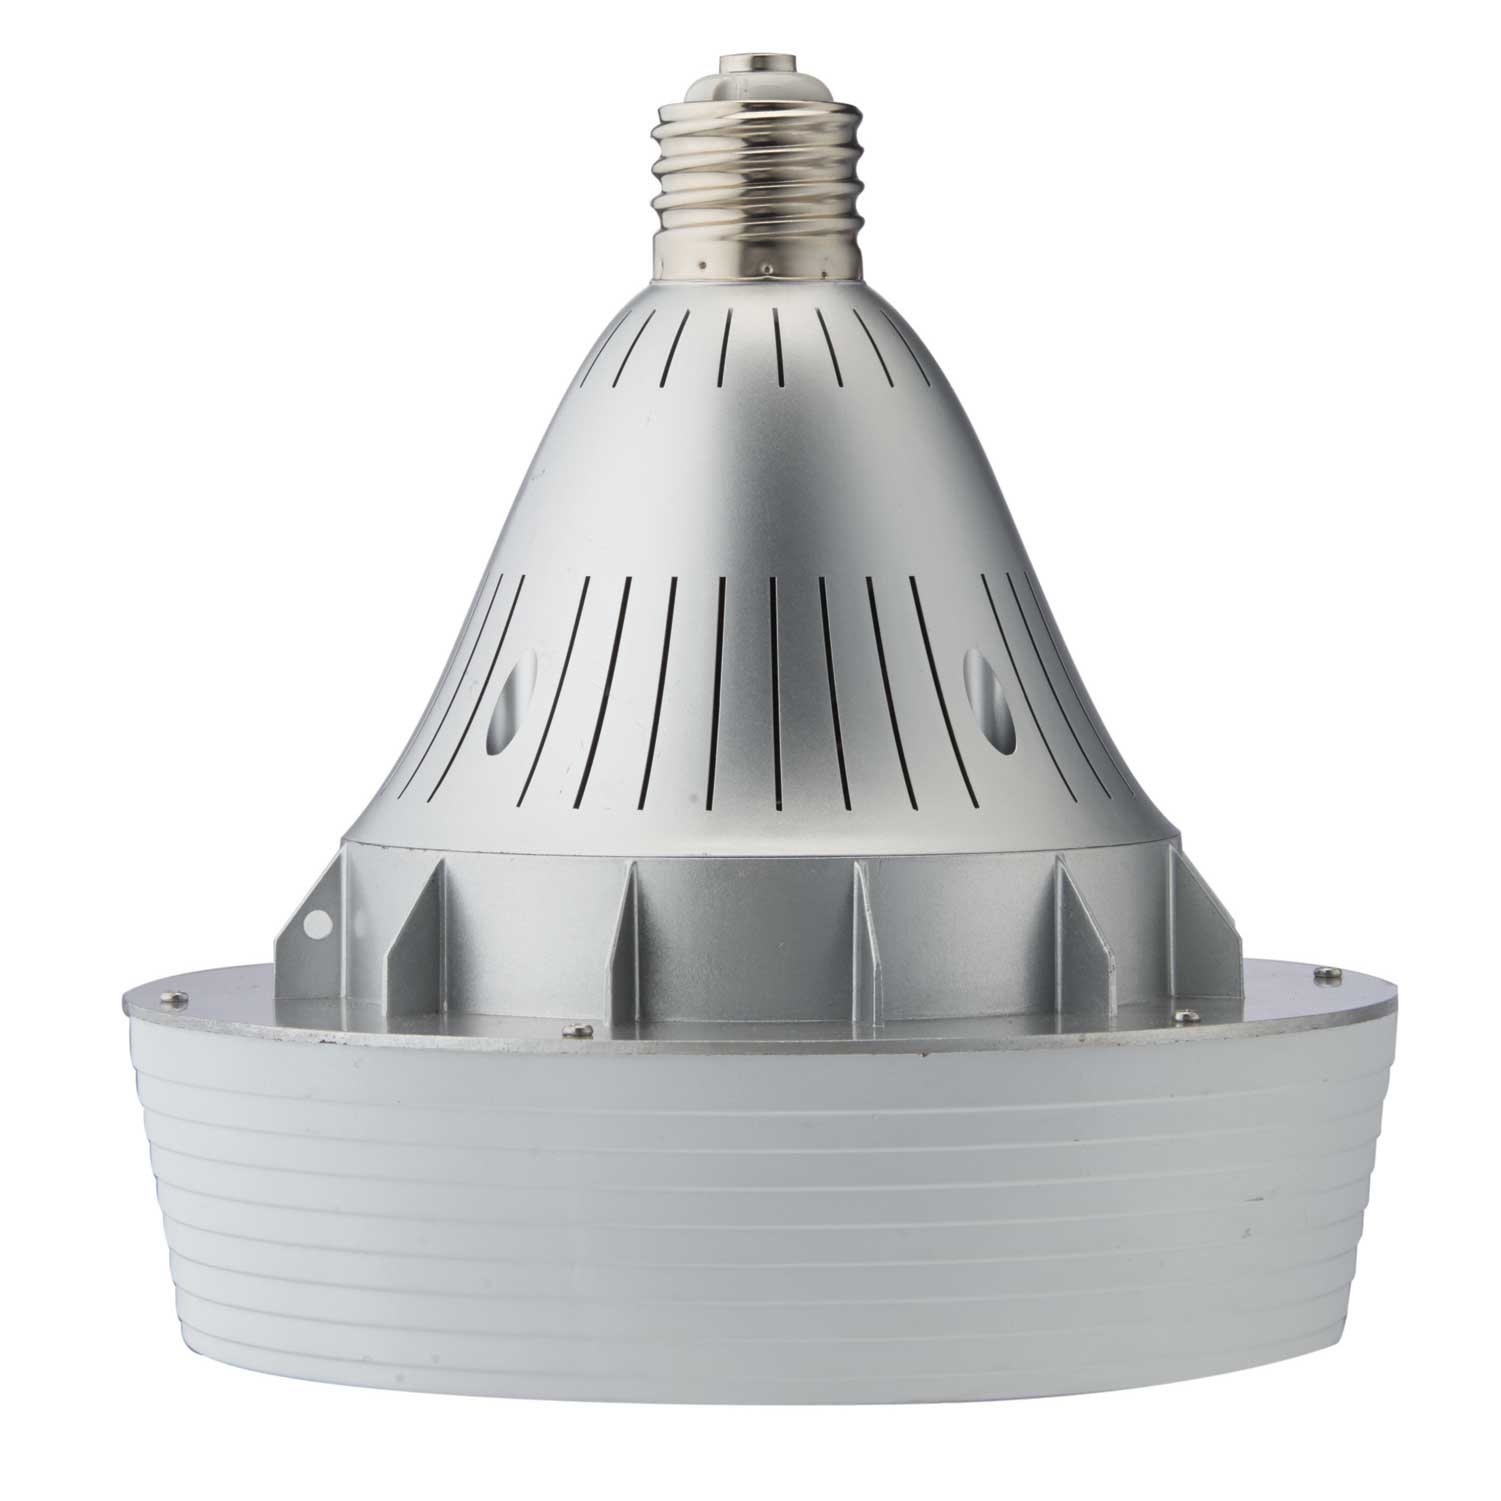 Light Efficient Design Led 8032m57 Bulb 150w High Bay